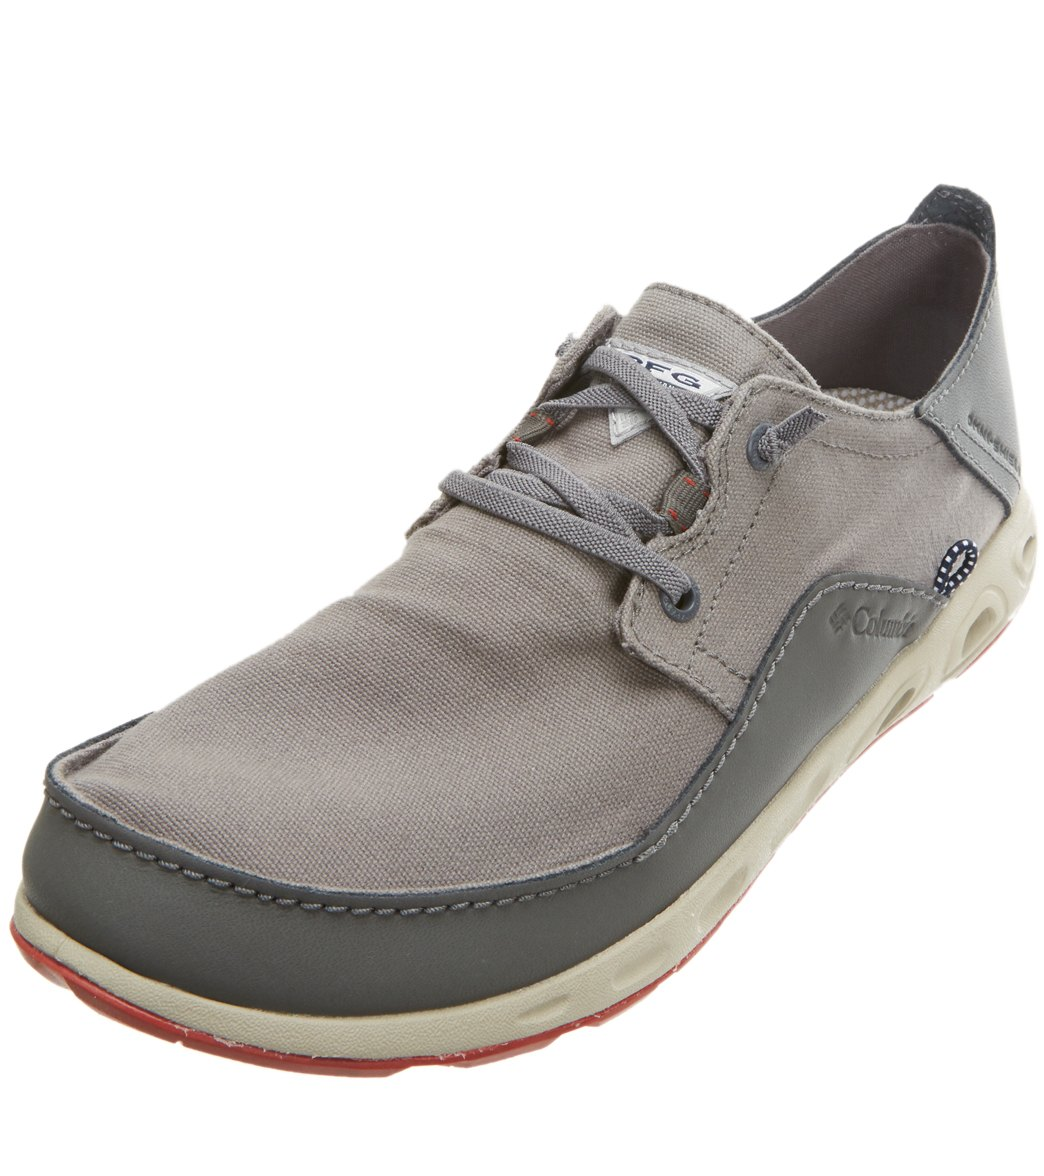 481c065e1d7 Columbia Men s Bahama Vent Relaxed PFG Shoe at SwimOutlet.com - Free  Shipping